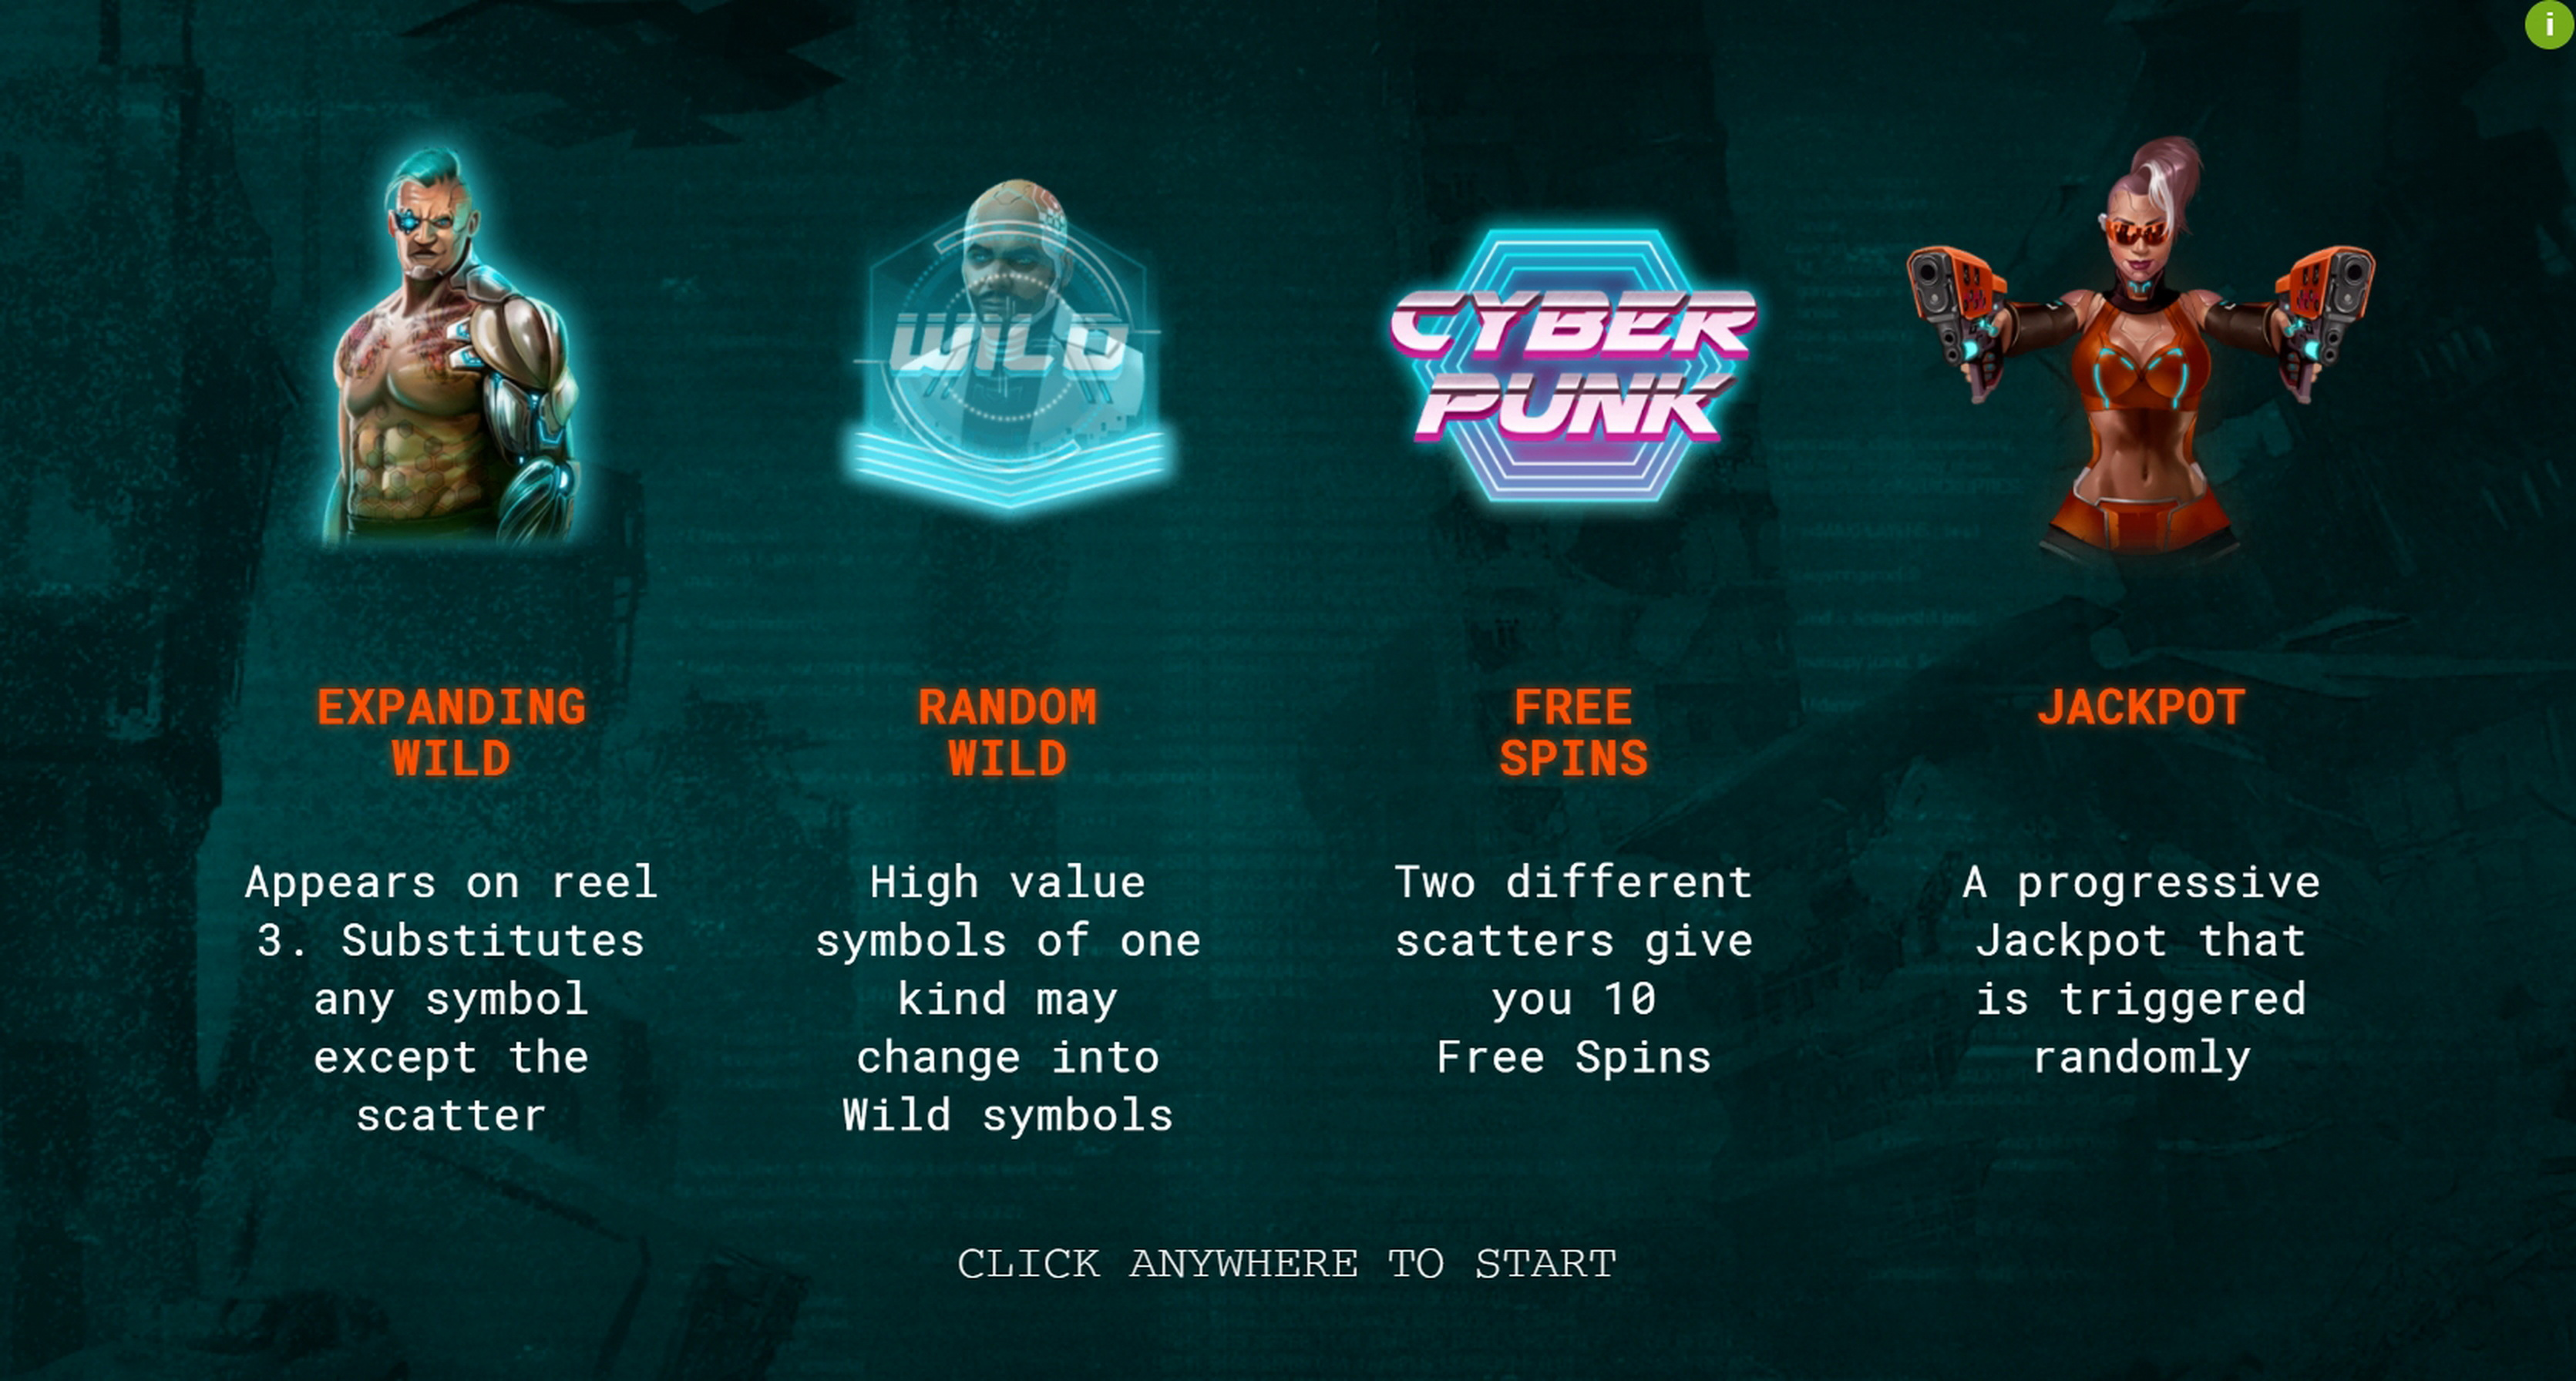 Play Cyberpunk Wars Free Casino Slot Game by Woohoo